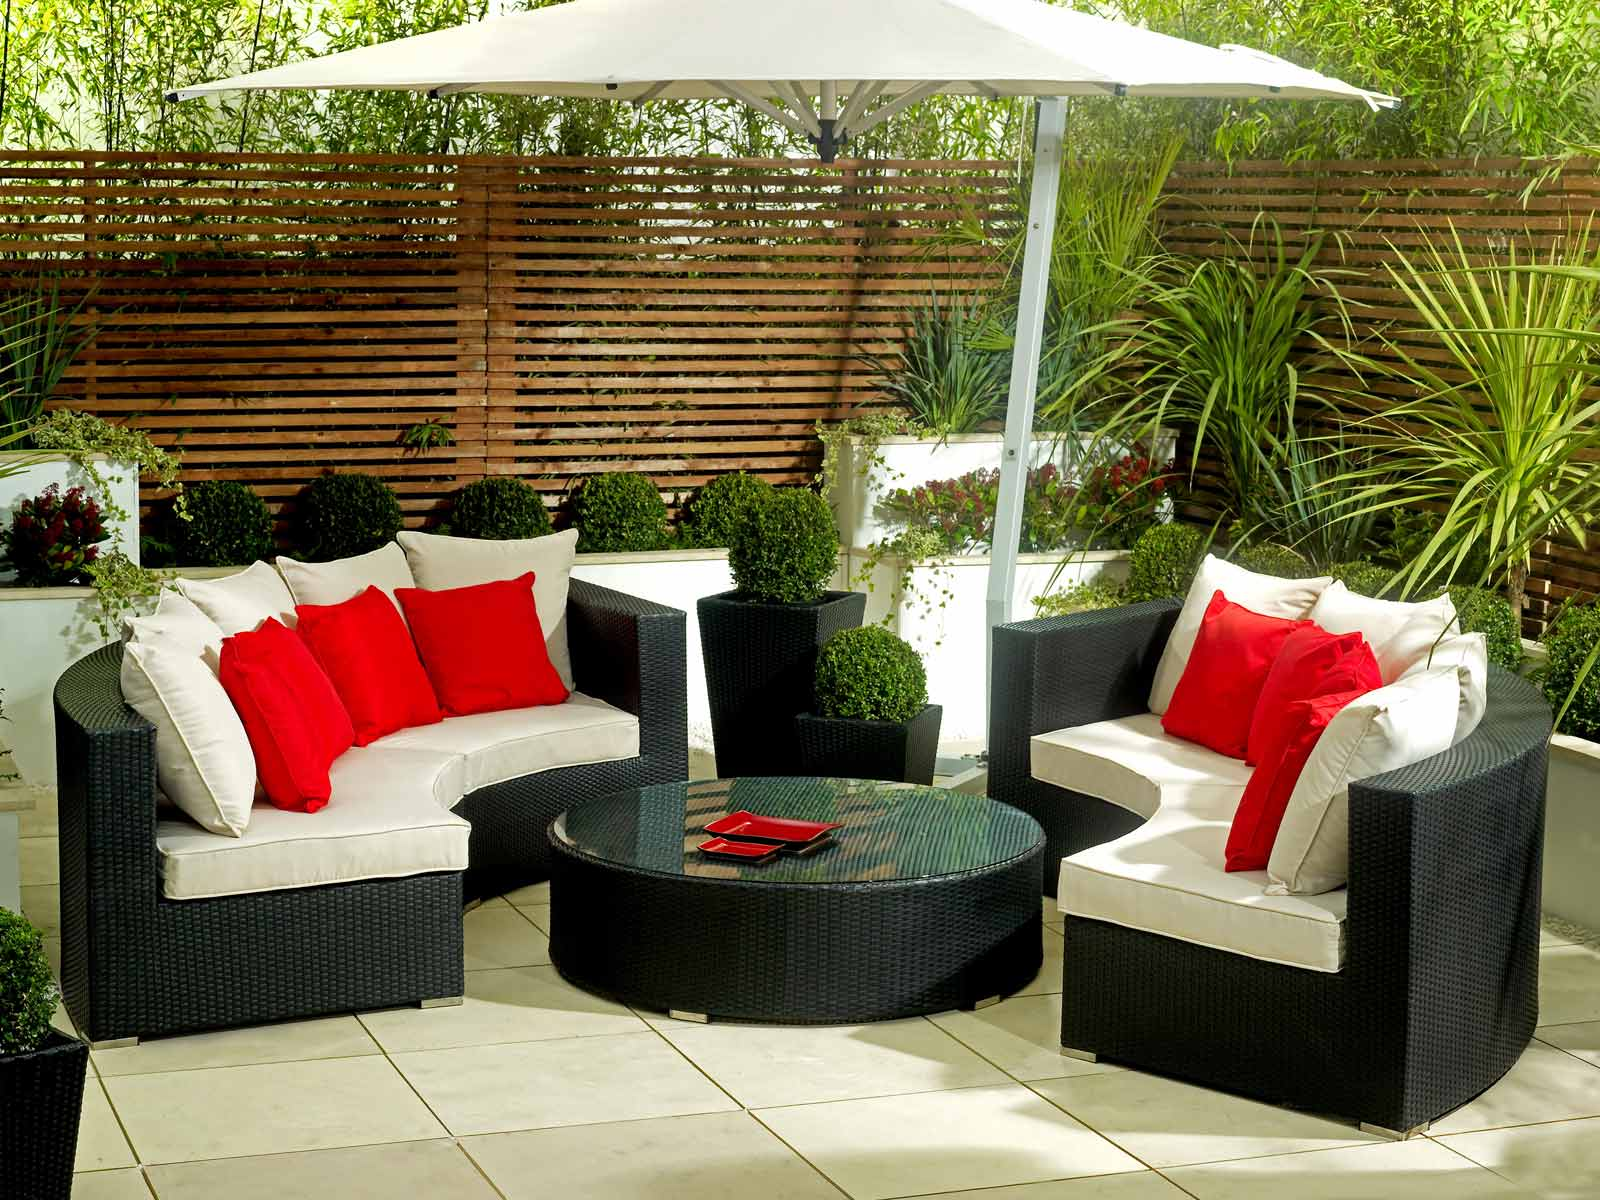 Furniture store sweet home furniture stores for Outdoor patio accessories